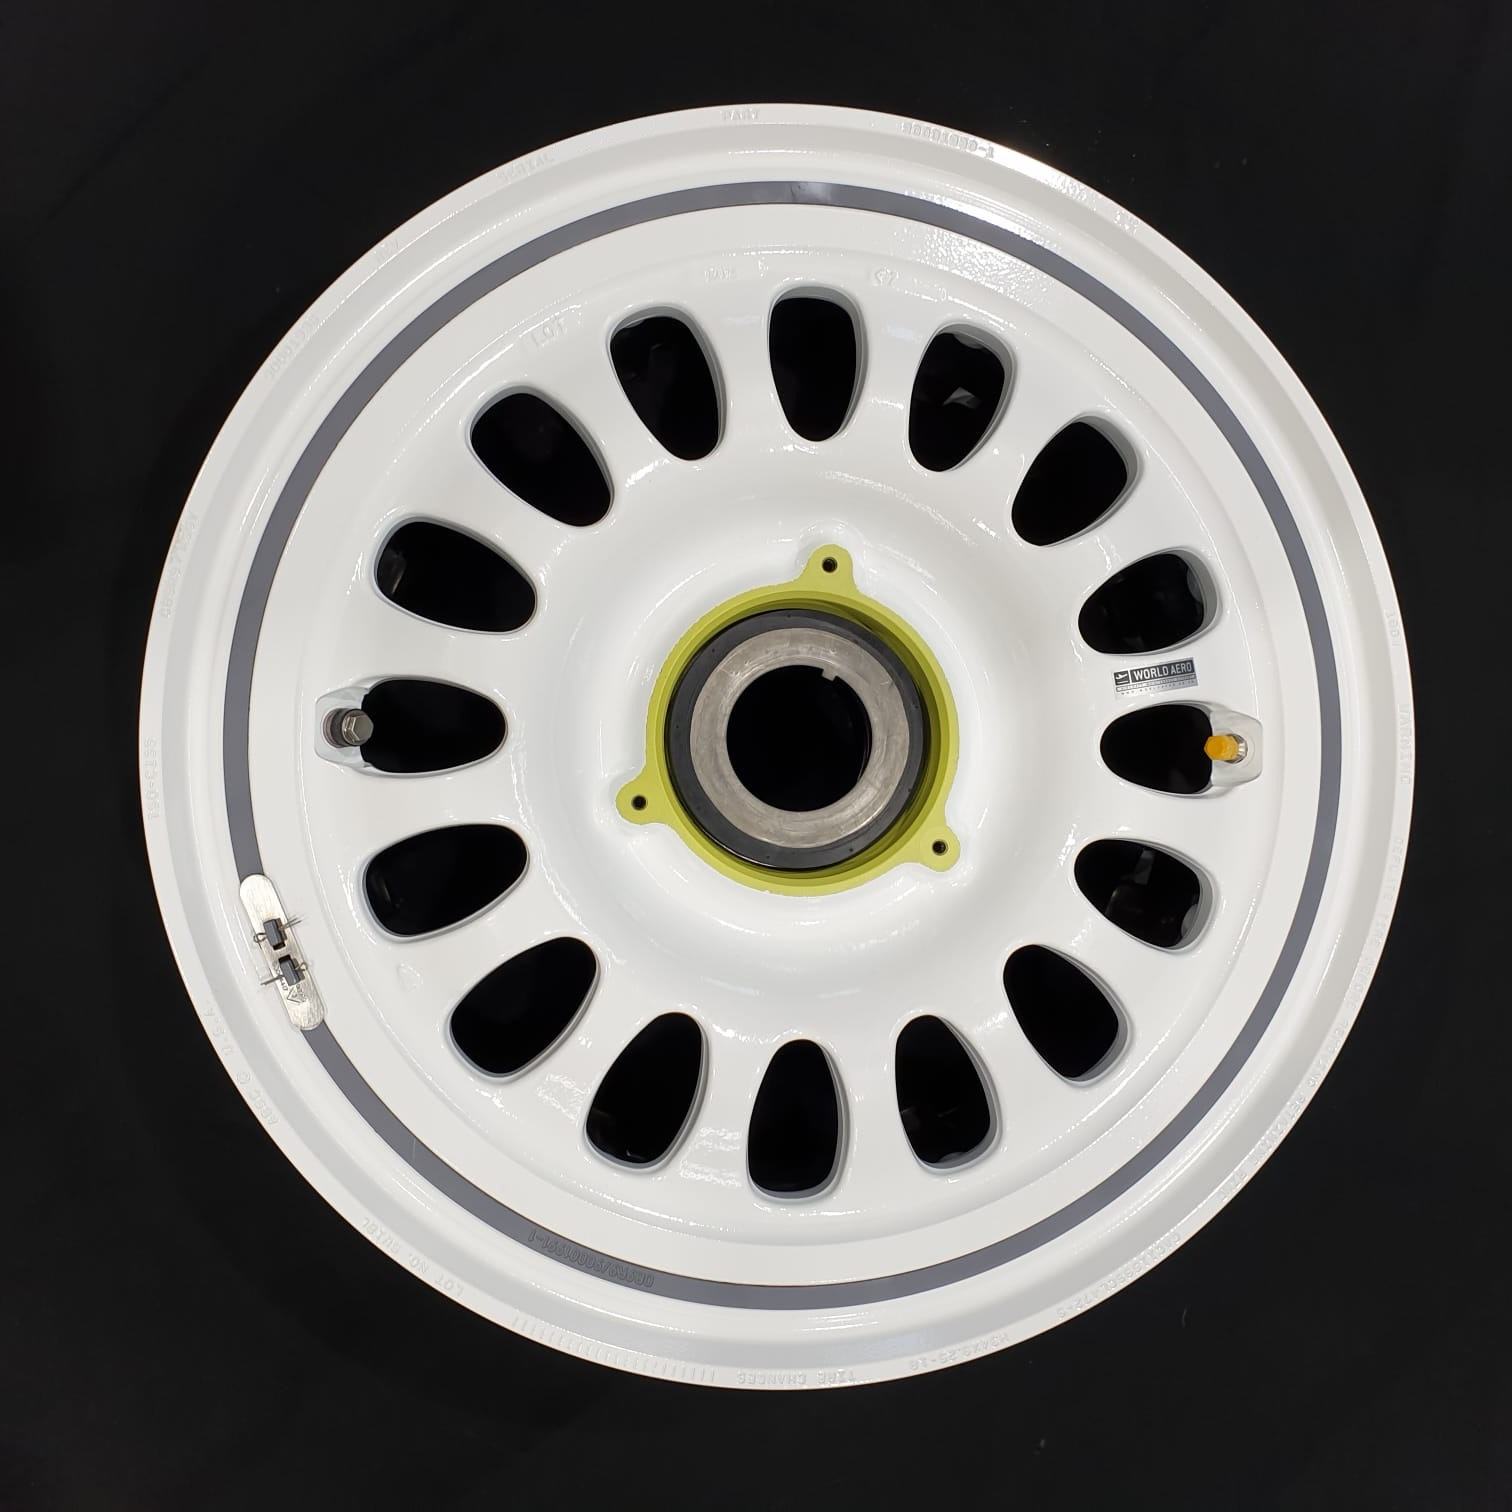 90001936 Gulfstream G450 Meggitt main wheel